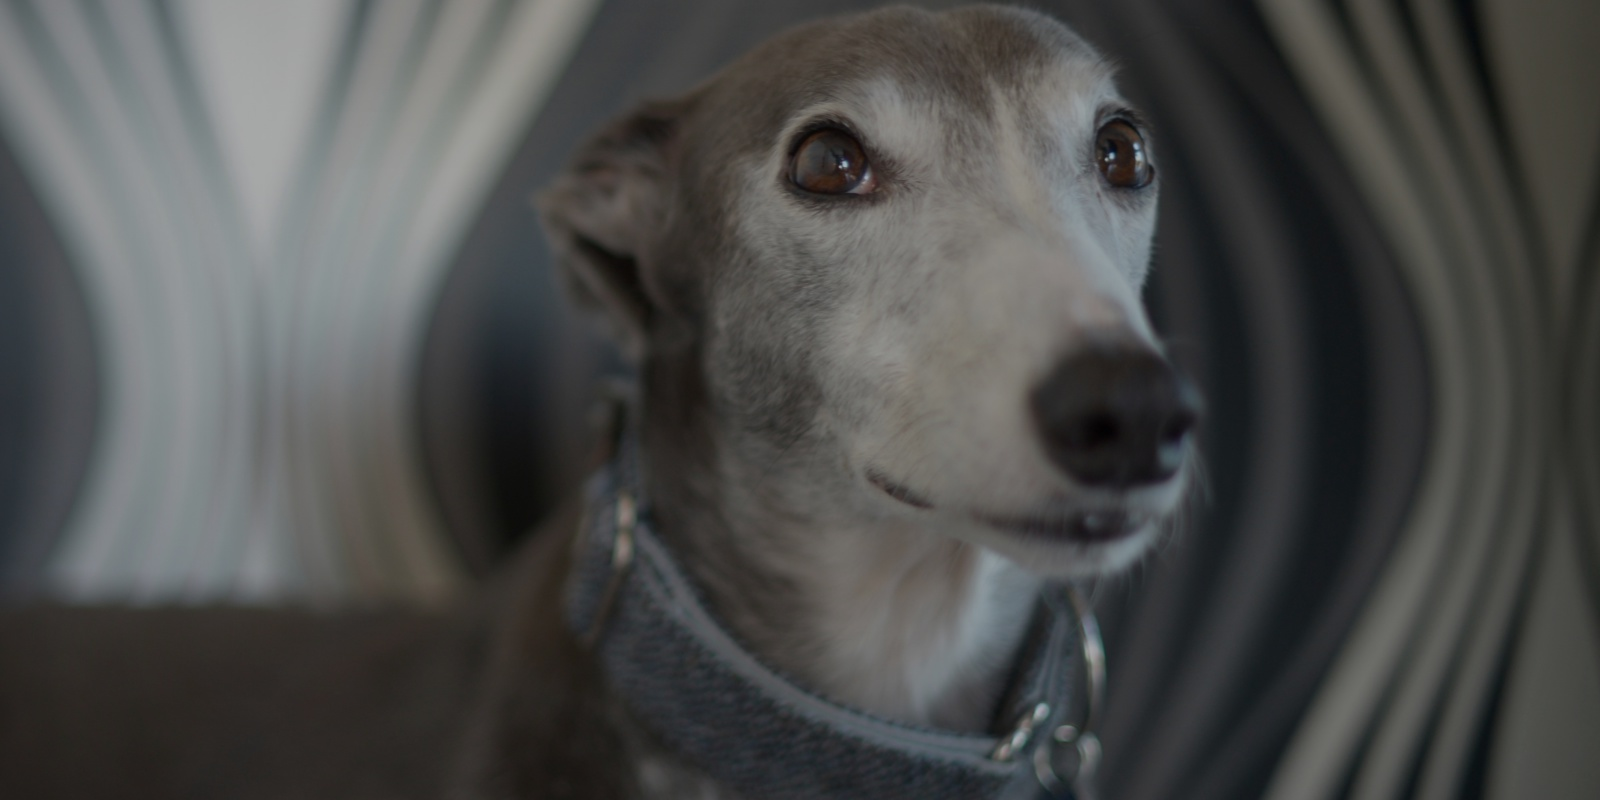 Headshot of greyhound with very grey face